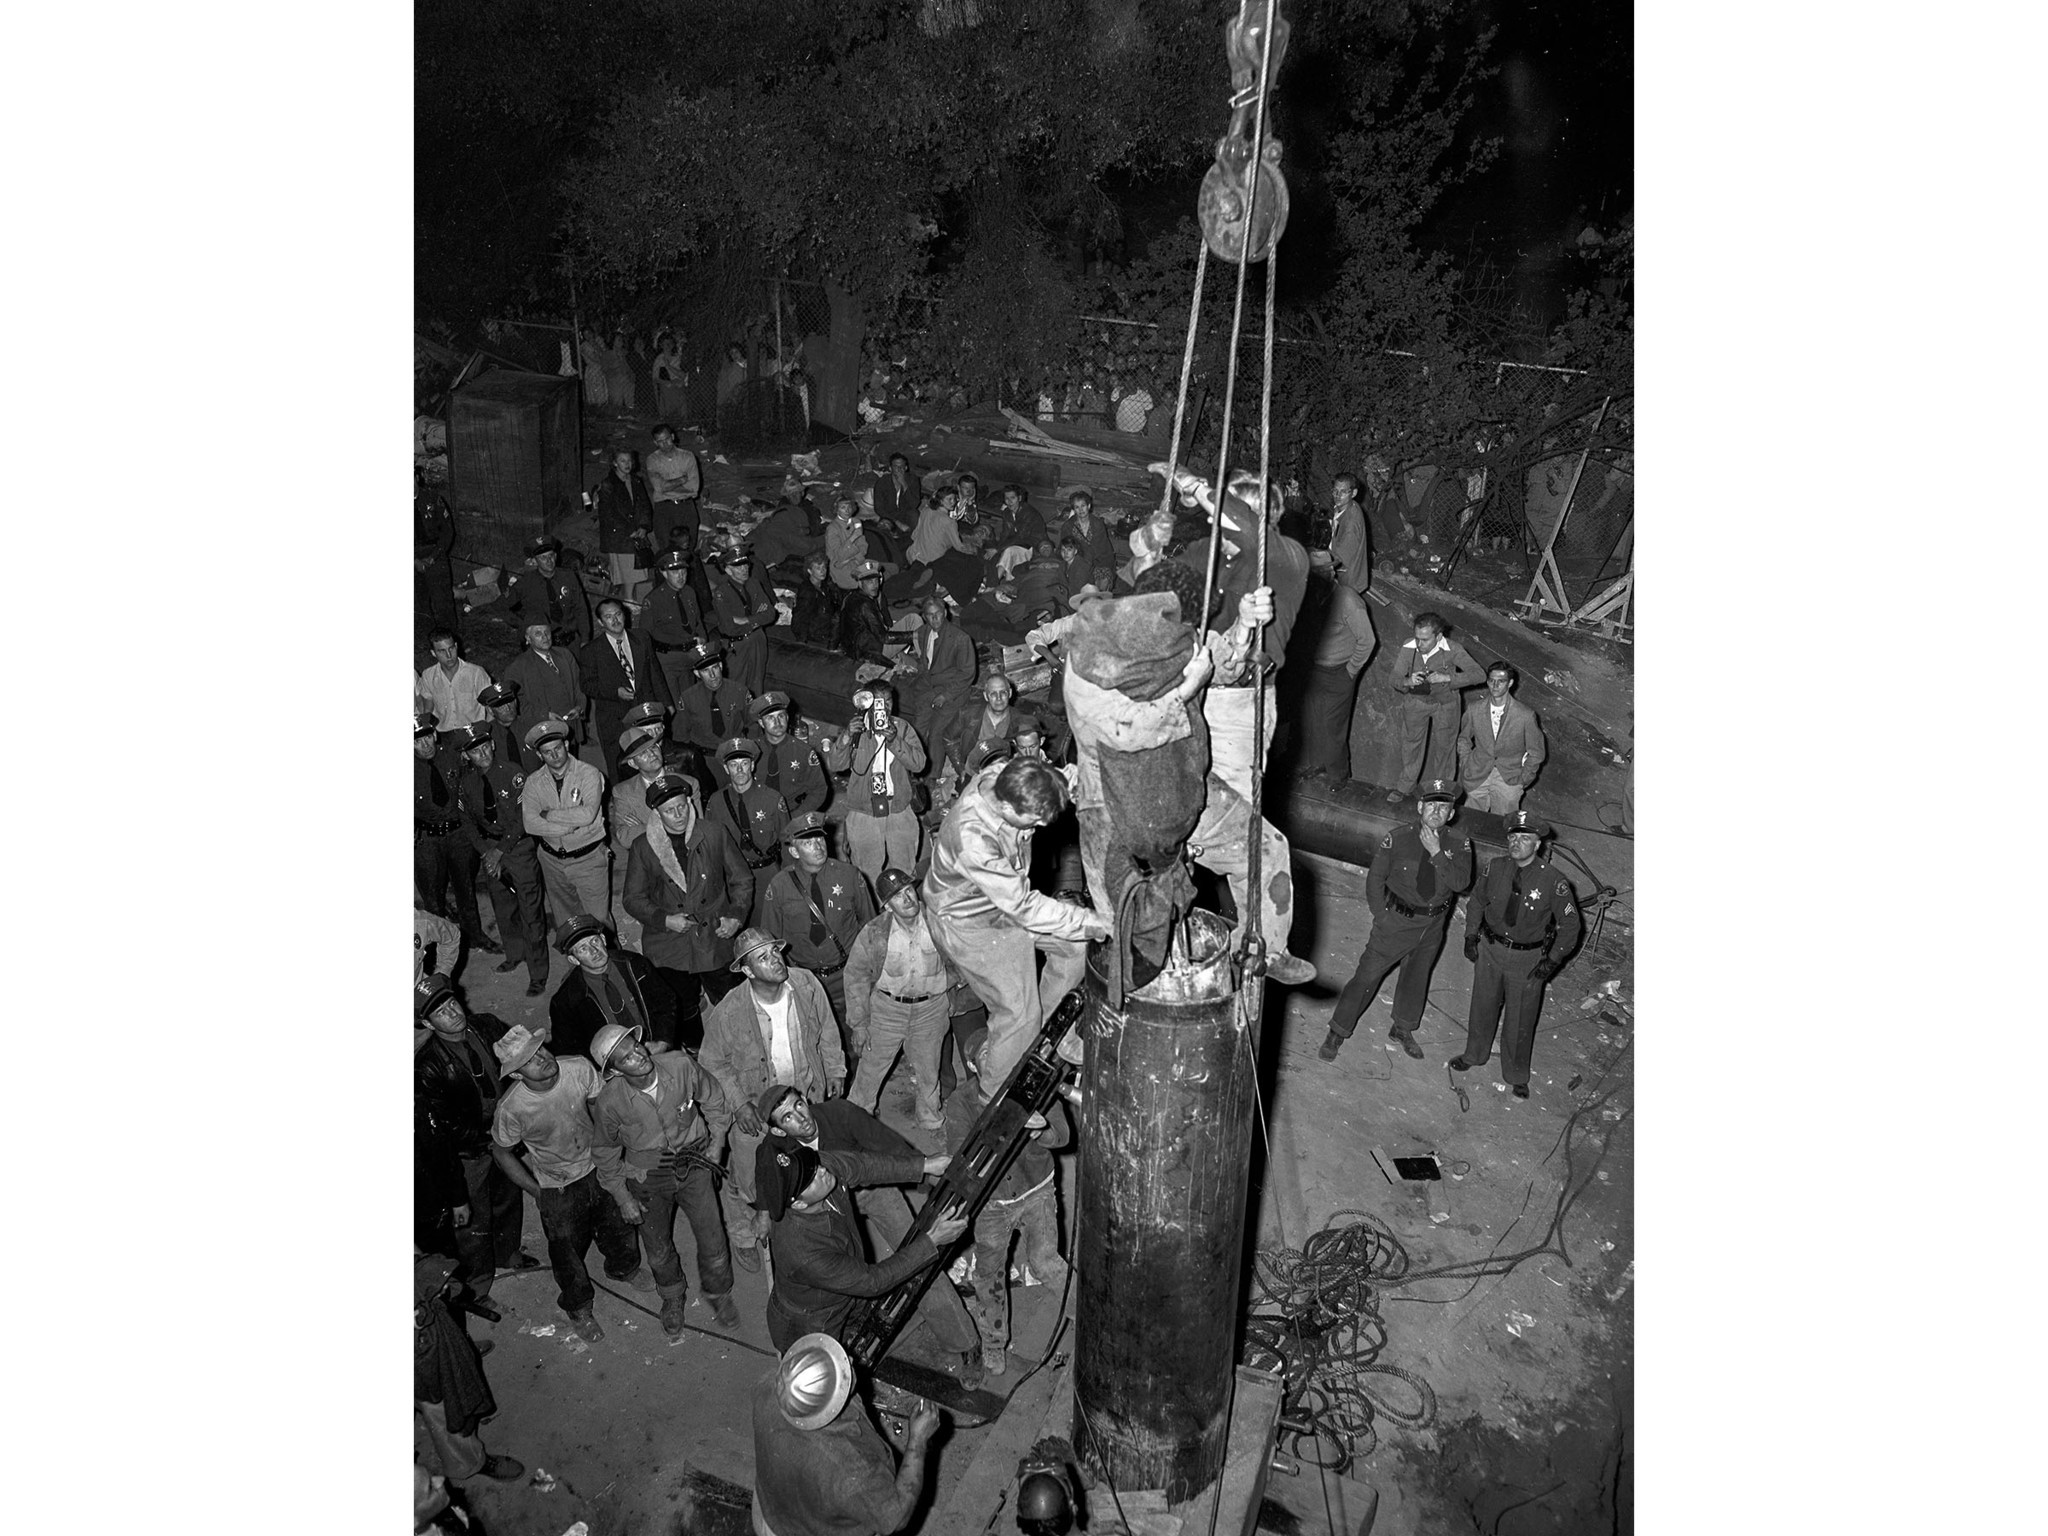 April 10, 1949: The body of Kathy Fiscus is brought to the surface during rescue operations in San M